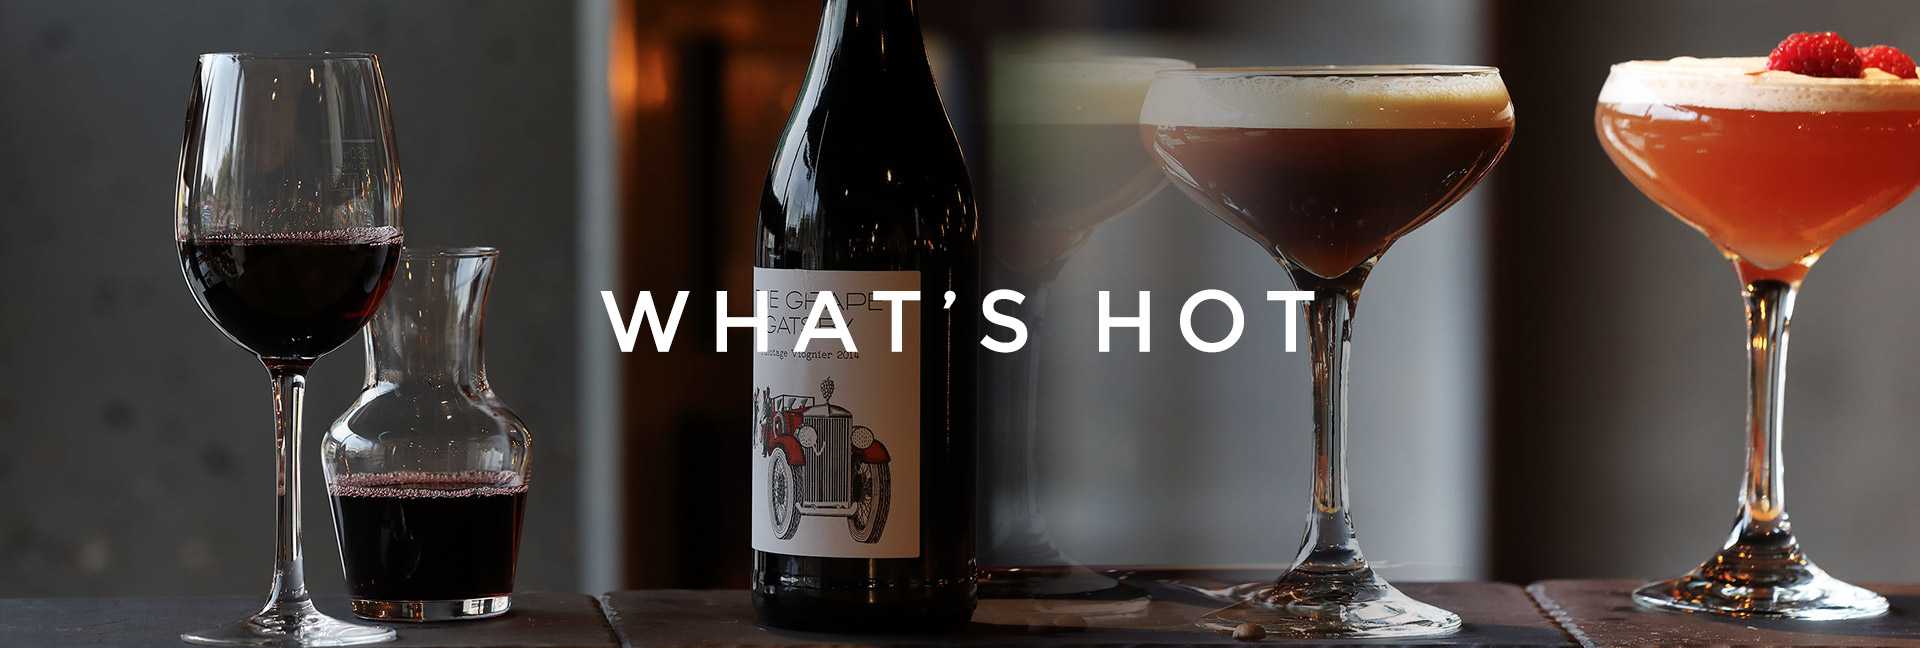 What's Hot at All Bar One Butlers Wharf